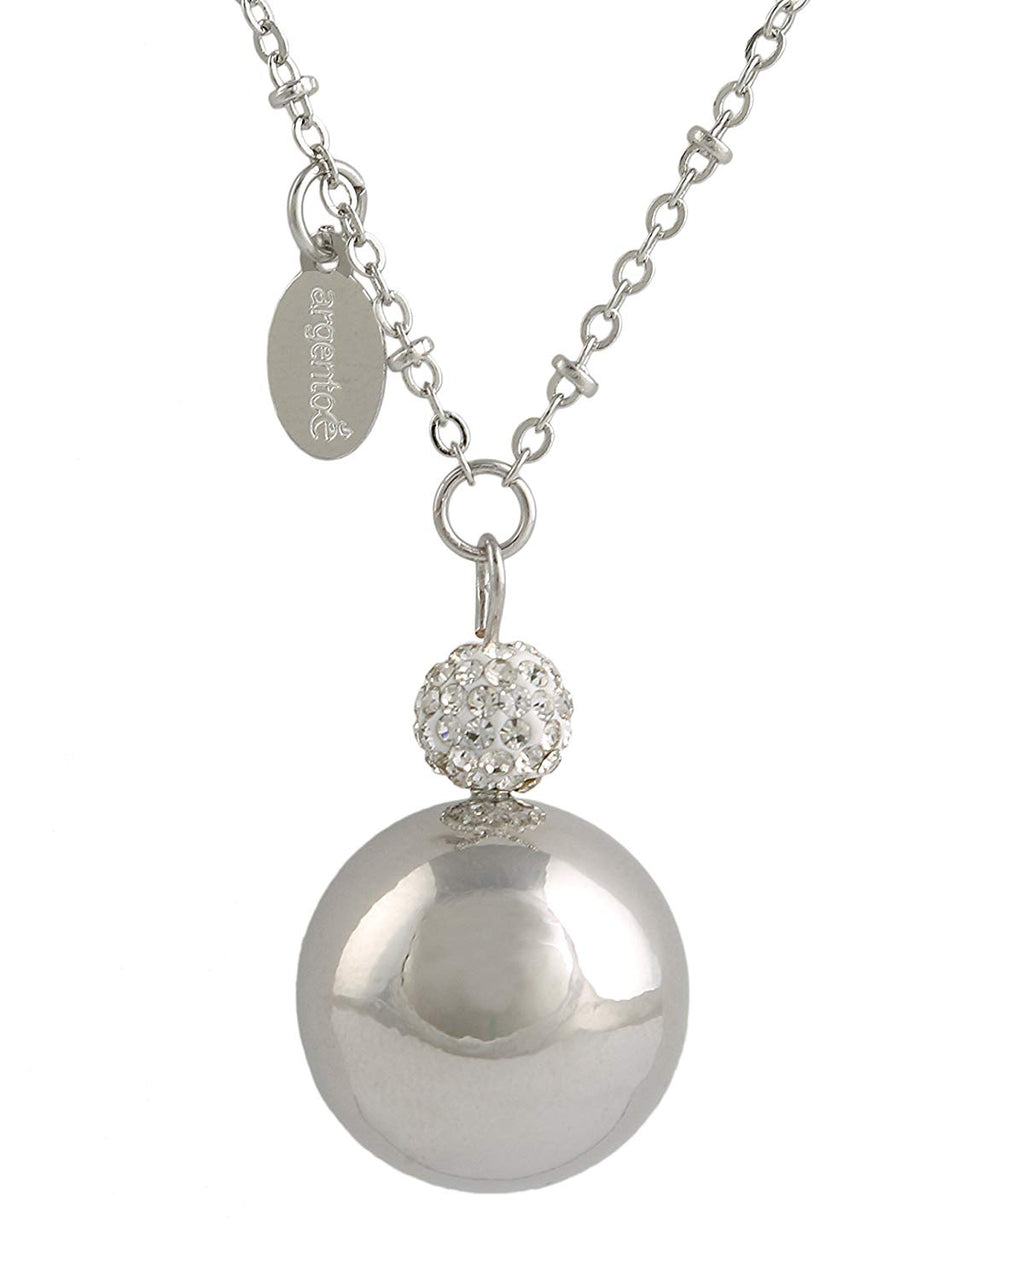 Chiama Angeli BOLA Messicana rodiata con Cristalli e Strass Silver Mother Care con Collana cm.100